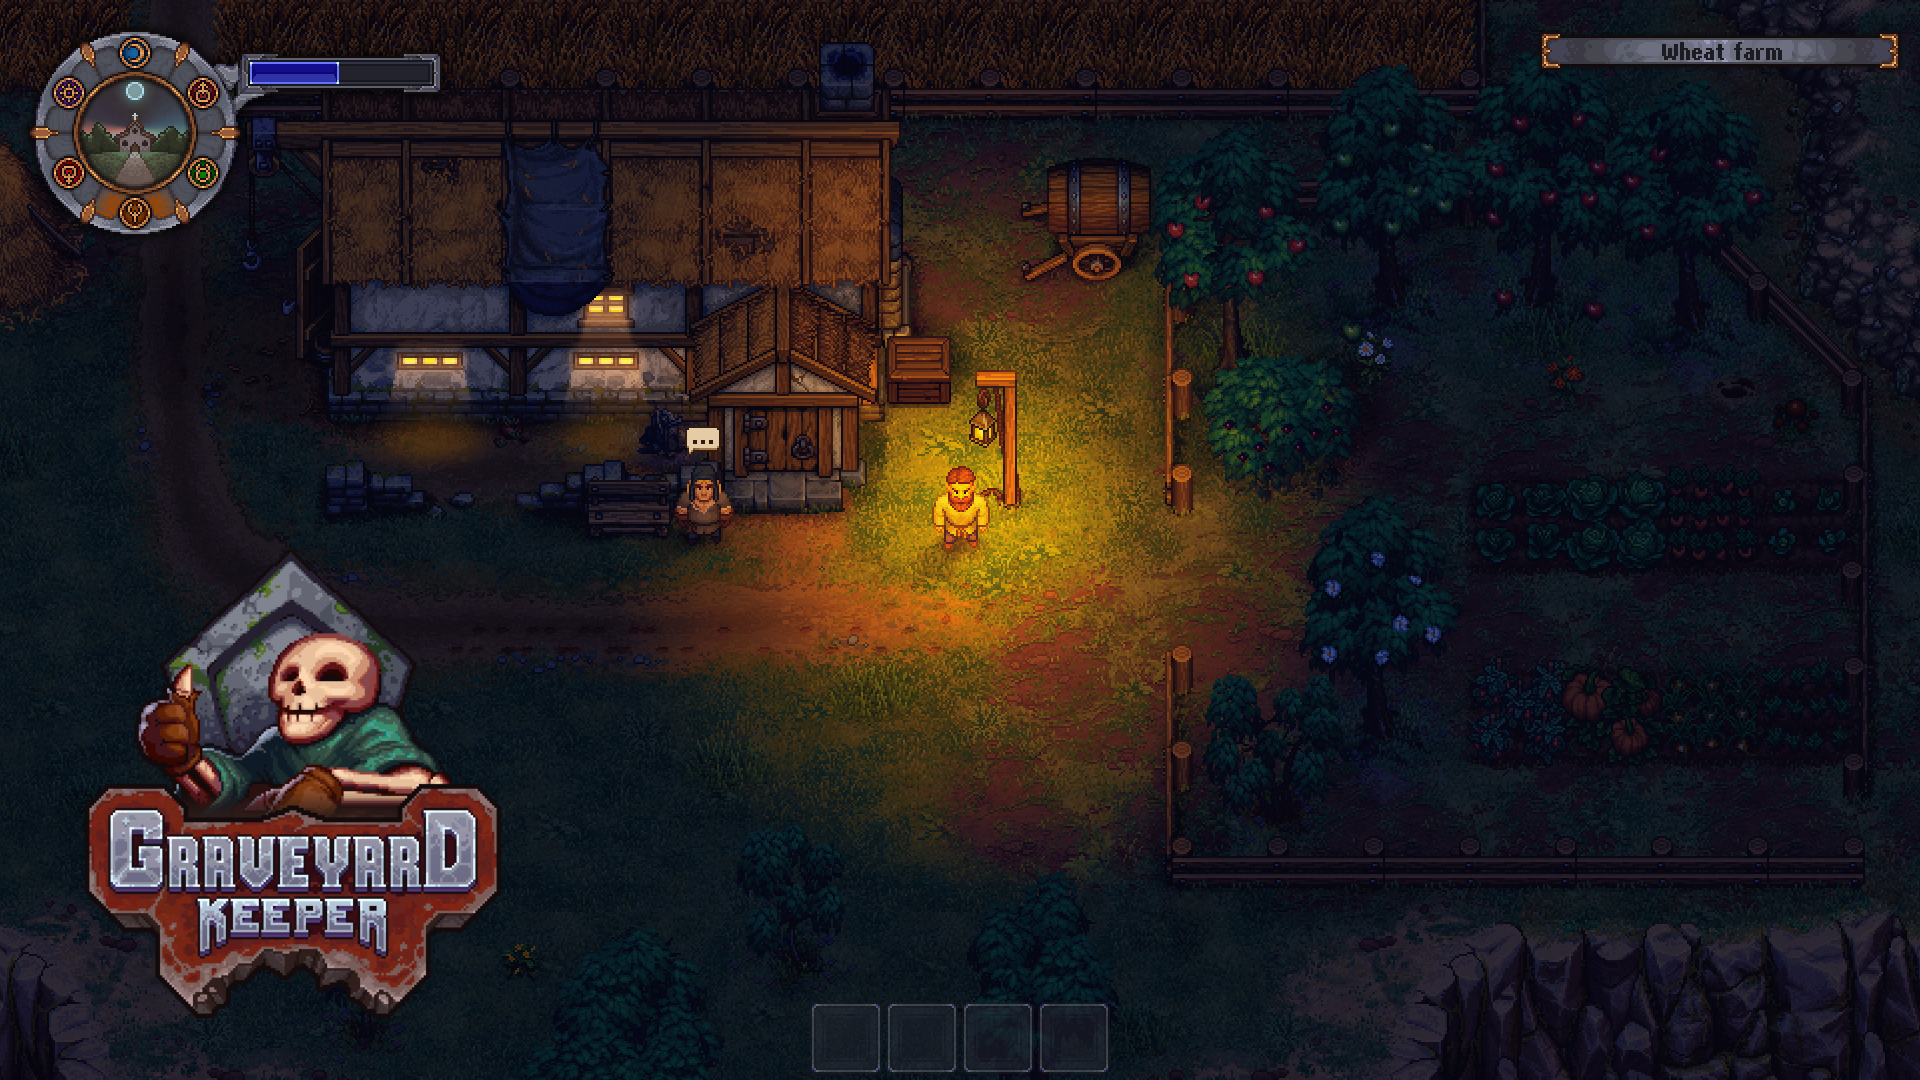 Medieval cemetery management sim Graveyard Keeper is out on